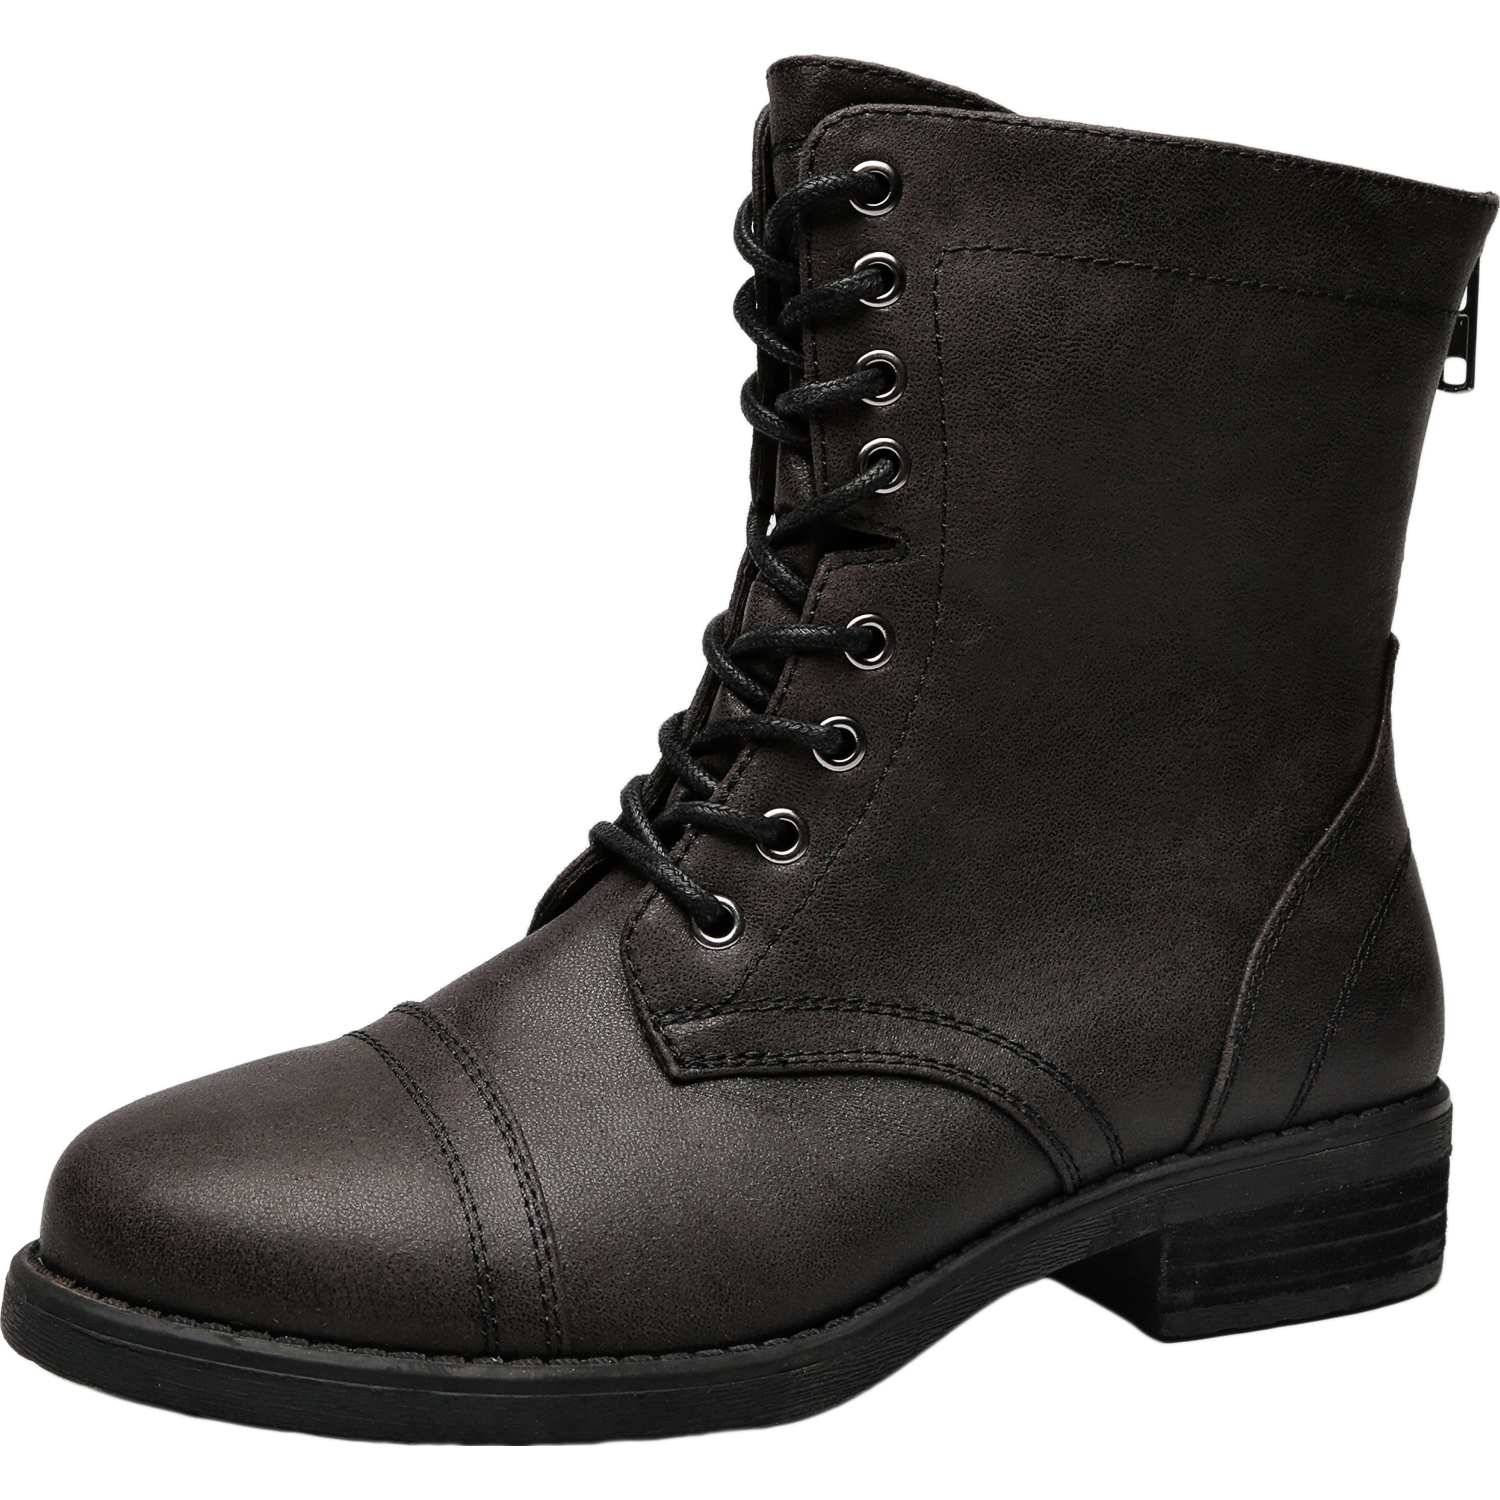 1c3eb1d5581b US  49.99 - Women s Wide Width Martin Boots - Low Heel Casual Back Zipper  Lace up Ankle Booties. - www.luoika-us.com